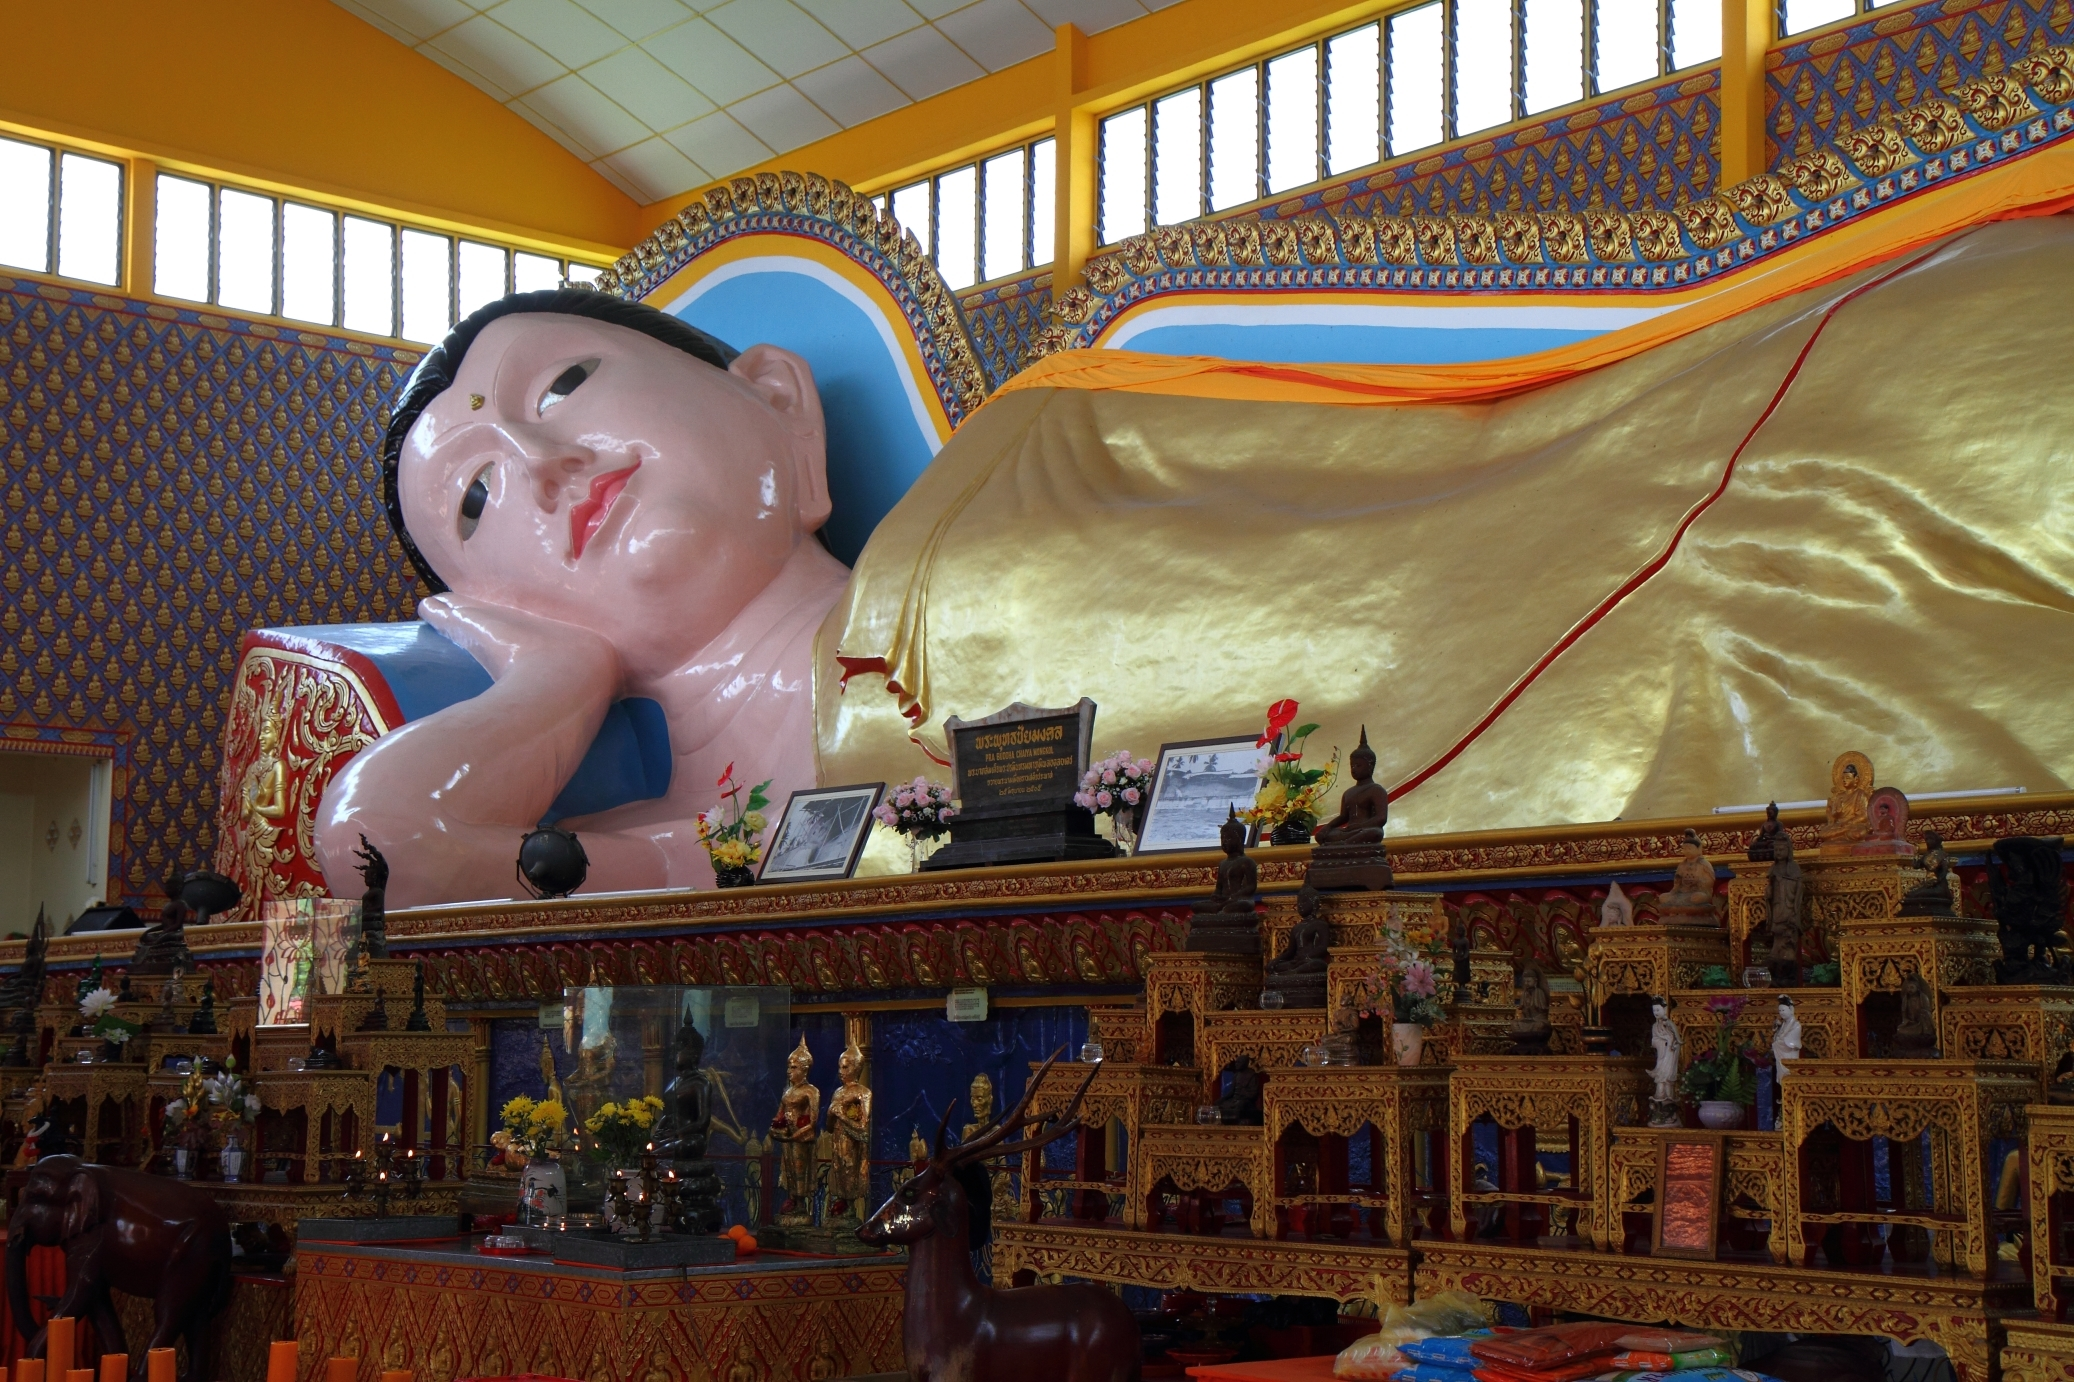 Marvel at one of Asia's largest reclining Buddha statues